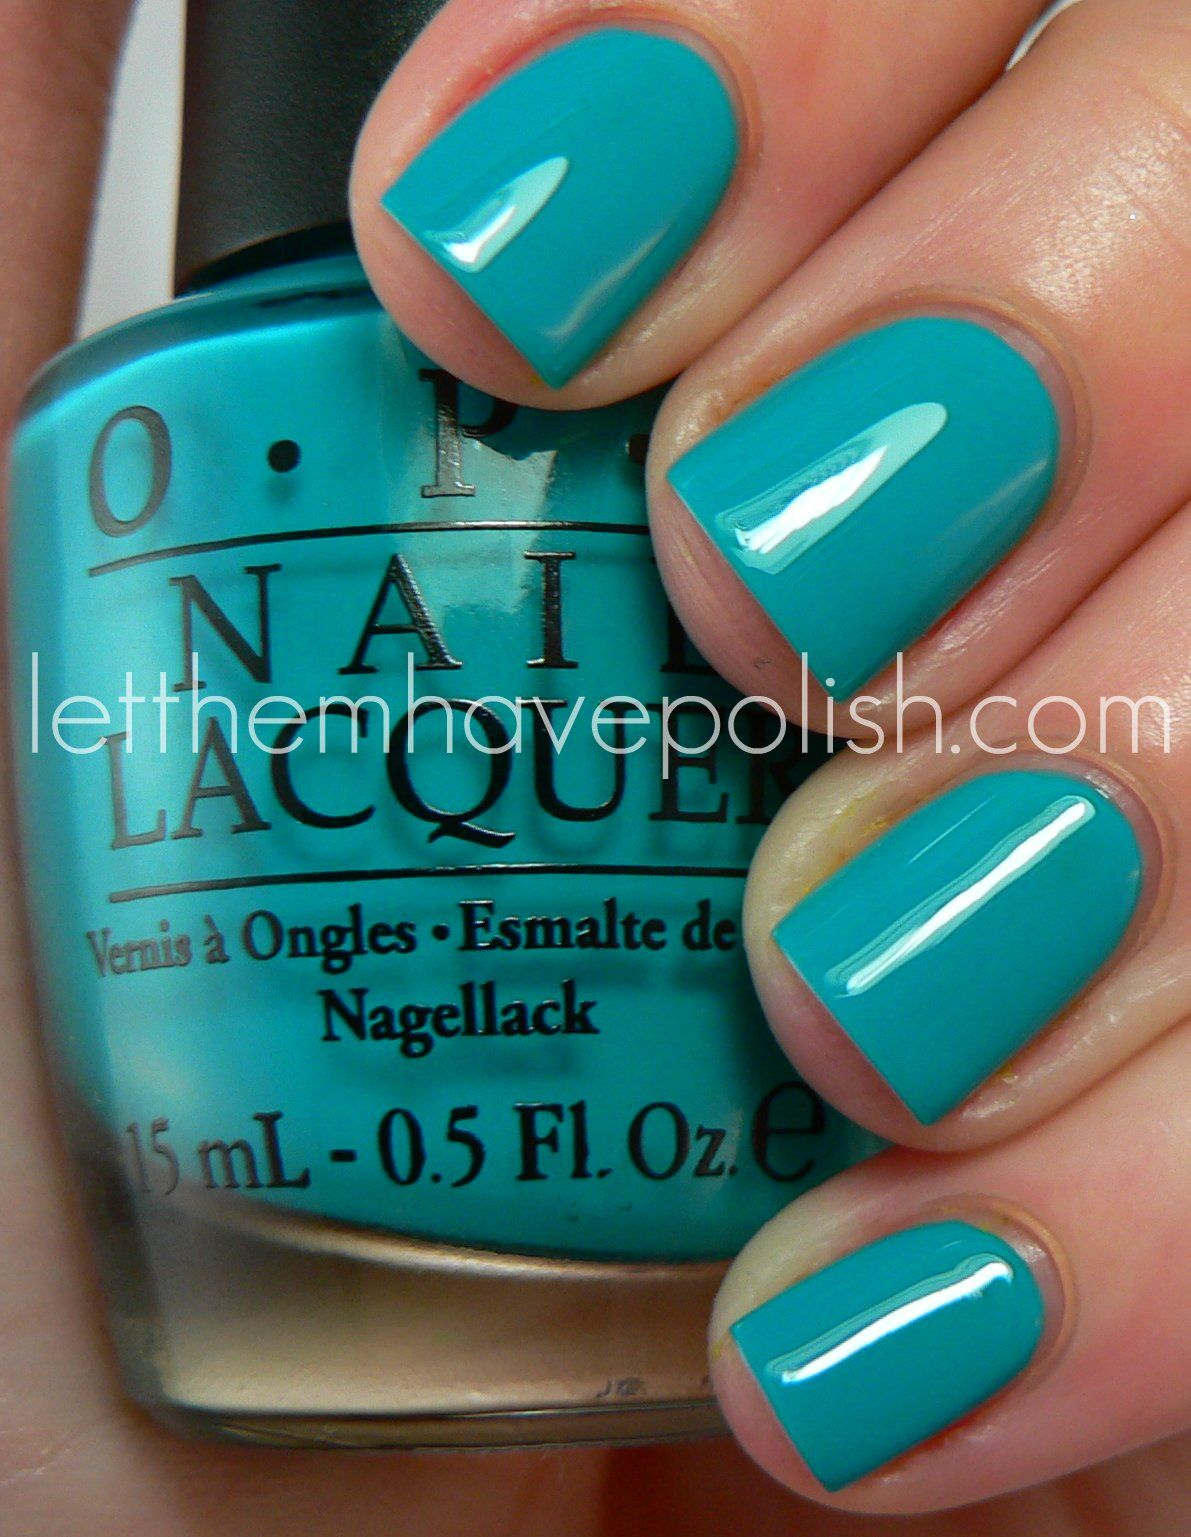 Tiffany Blue Nail Polish Opi : tiffany, polish, Nails,, Polish,, Polish, Colors